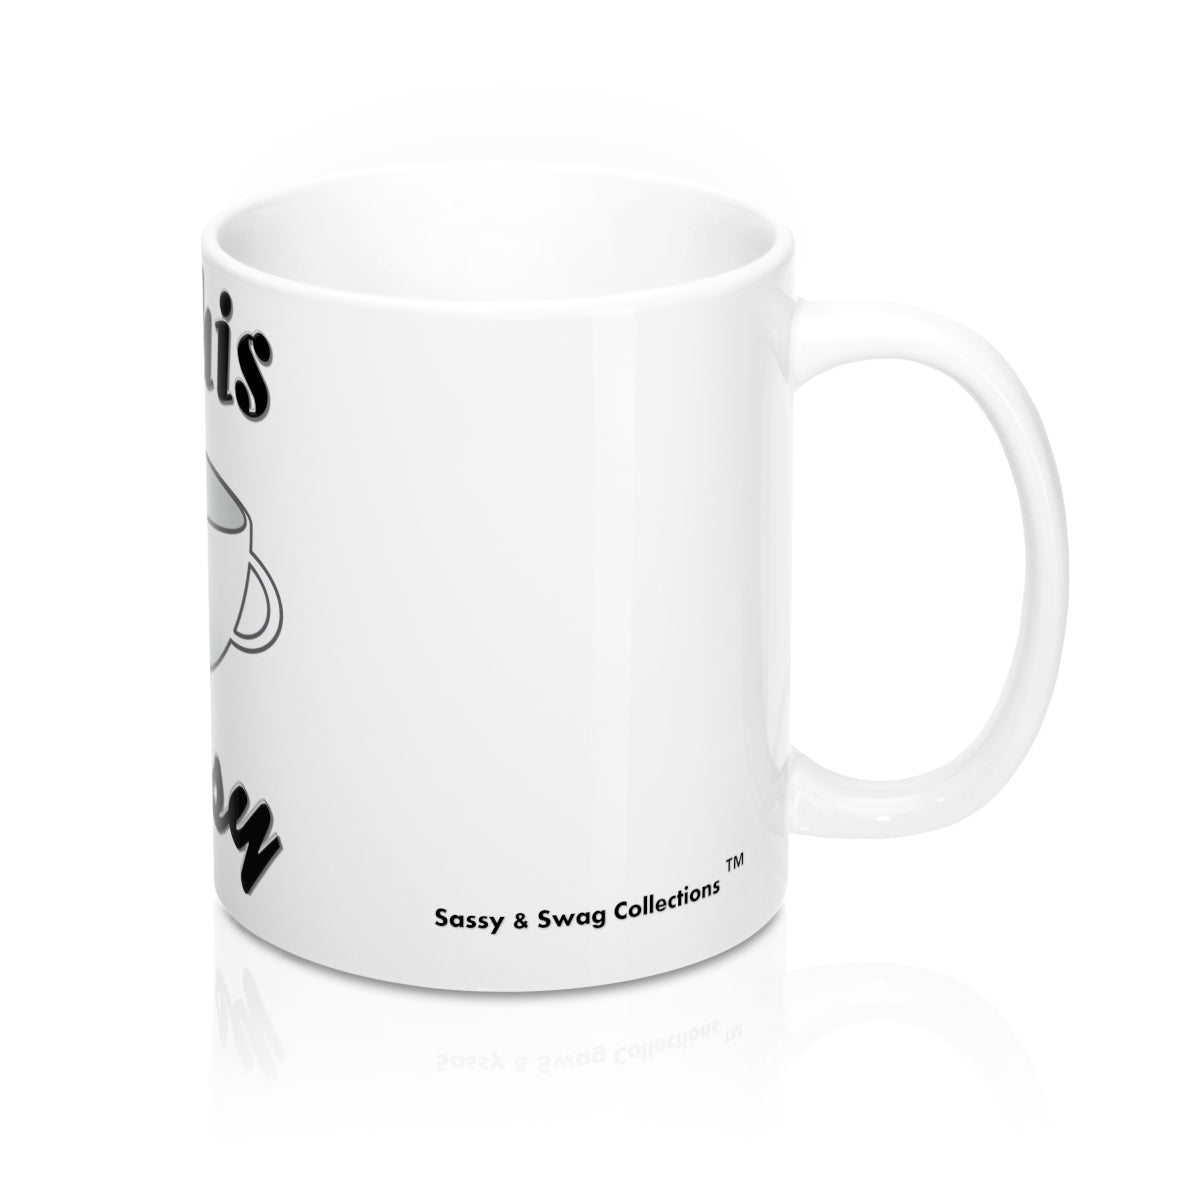 Sassy & Swag Collections - I'm His Cup of Sassy Mug 11oz